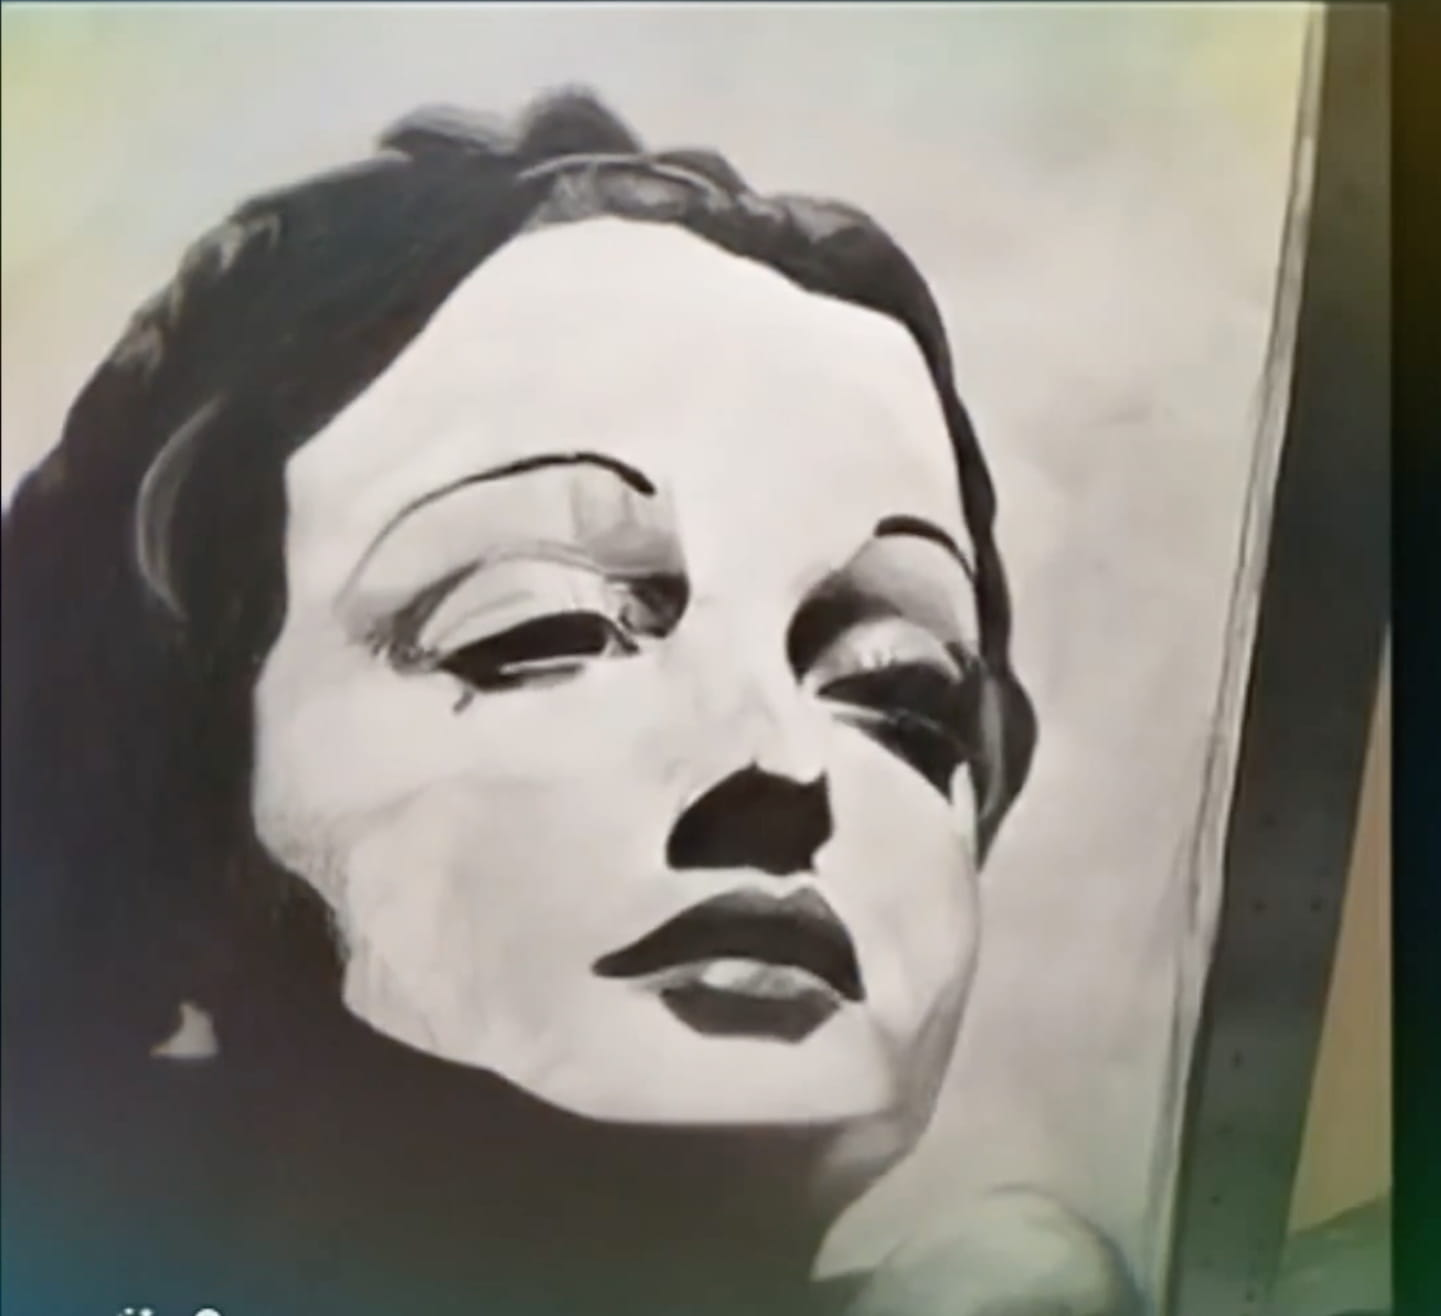 A still image from the video, a painting of a woman by Nowel Lucas